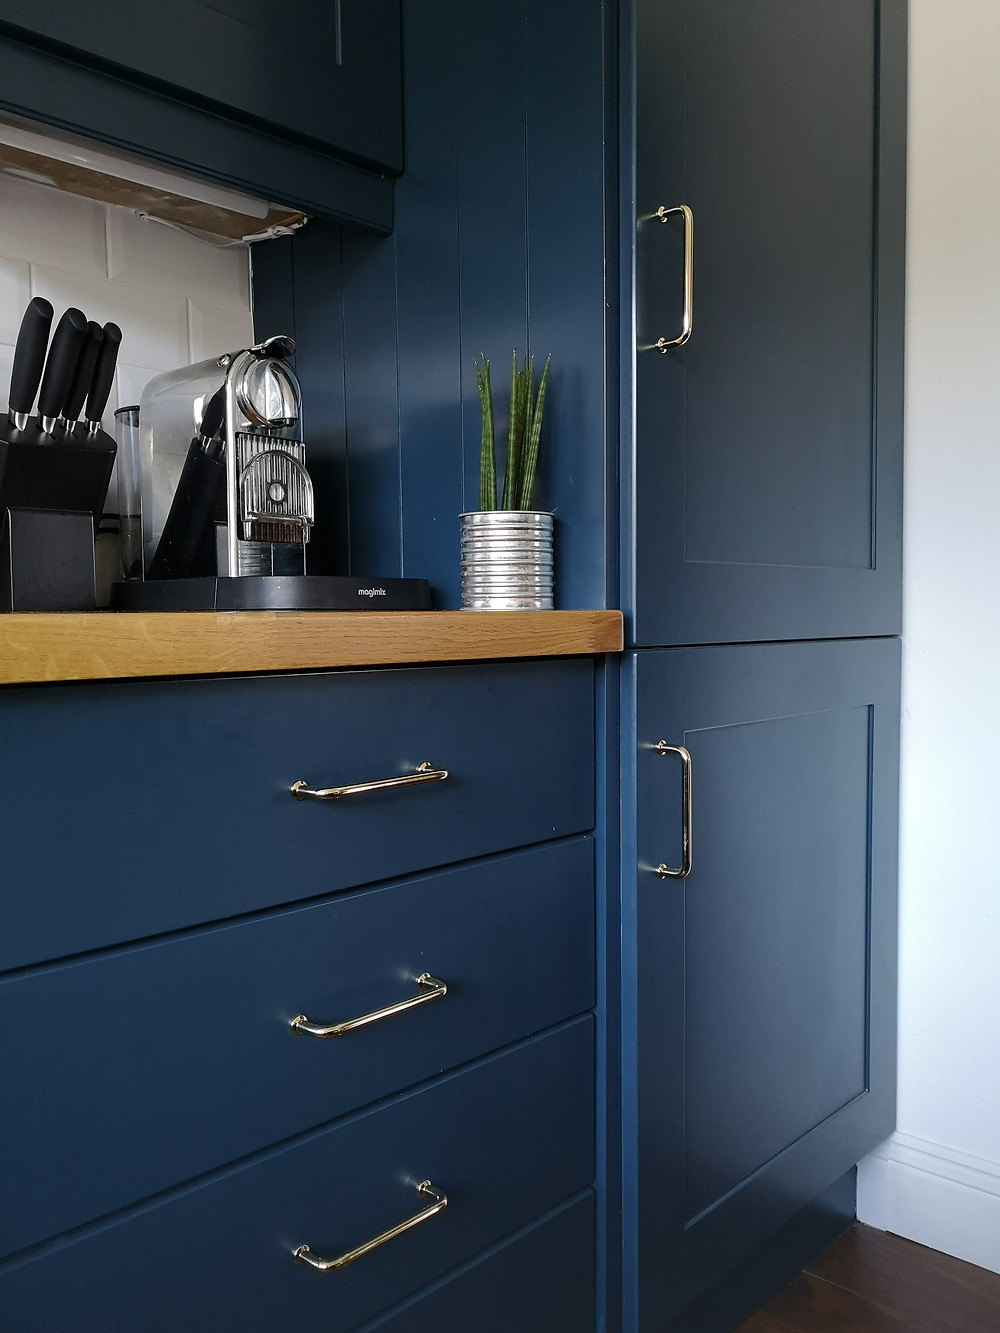 Farrow and Ball Hague Blue kitchen presses